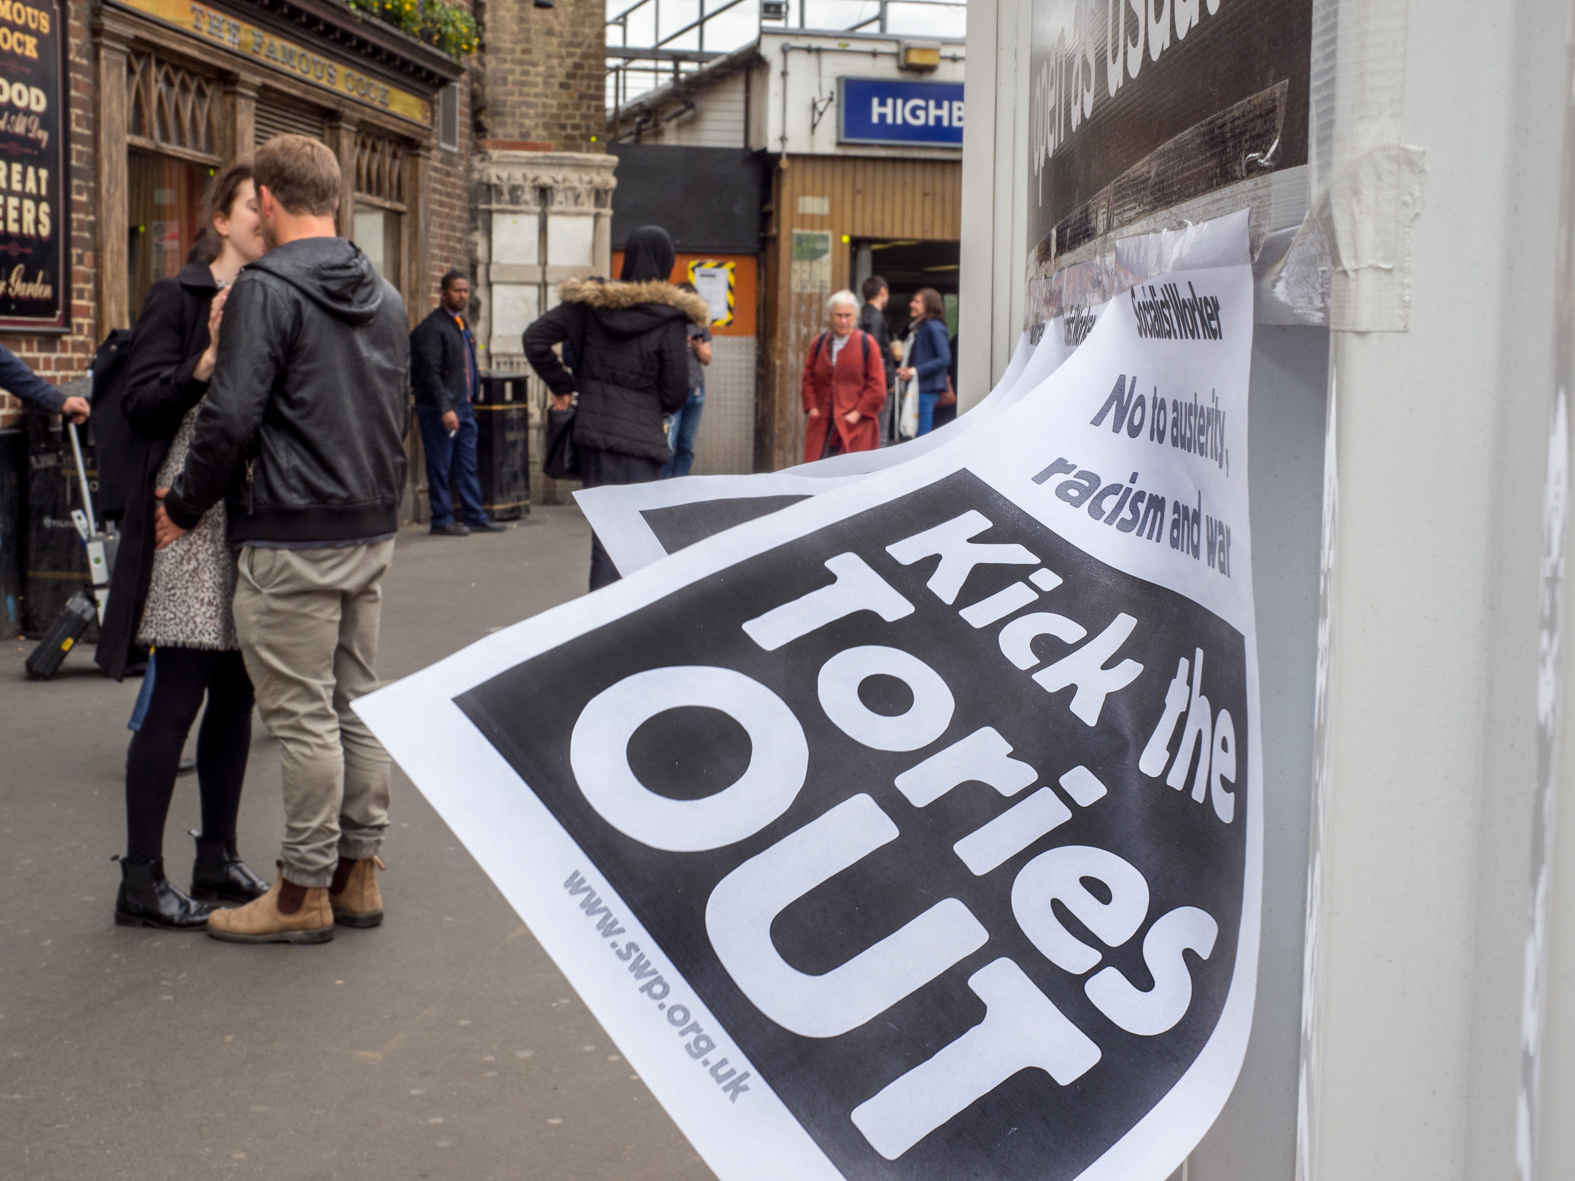 Kick the Tories OUT: Socialist Worker leaflet outside Highbury & Islington underground station. London.